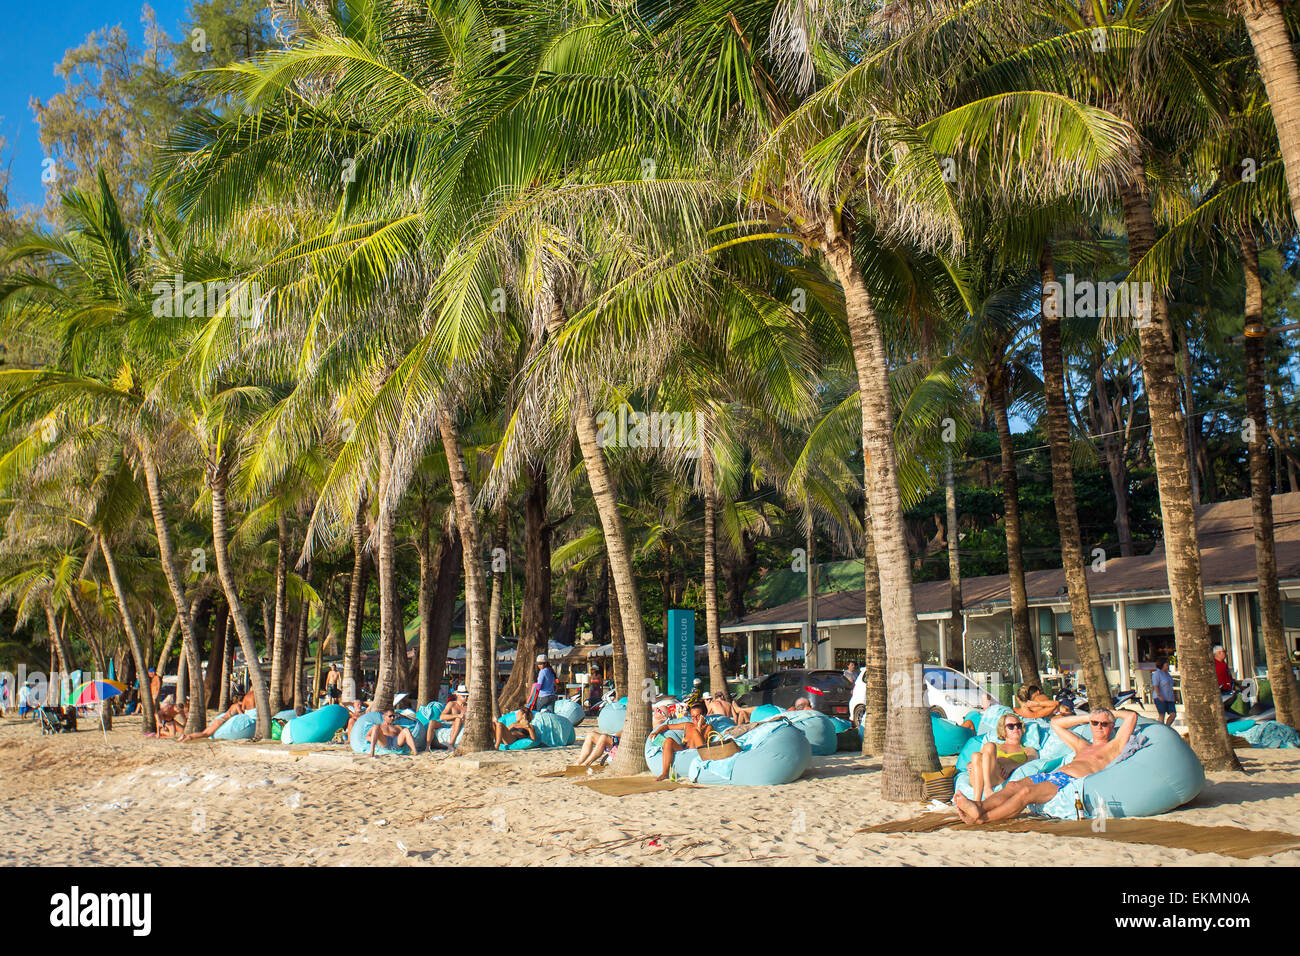 Phuket, Thailand - January 24, 2015: People resting on the couches at the luxury Surin beach on Phuket, Thailand - Stock Image